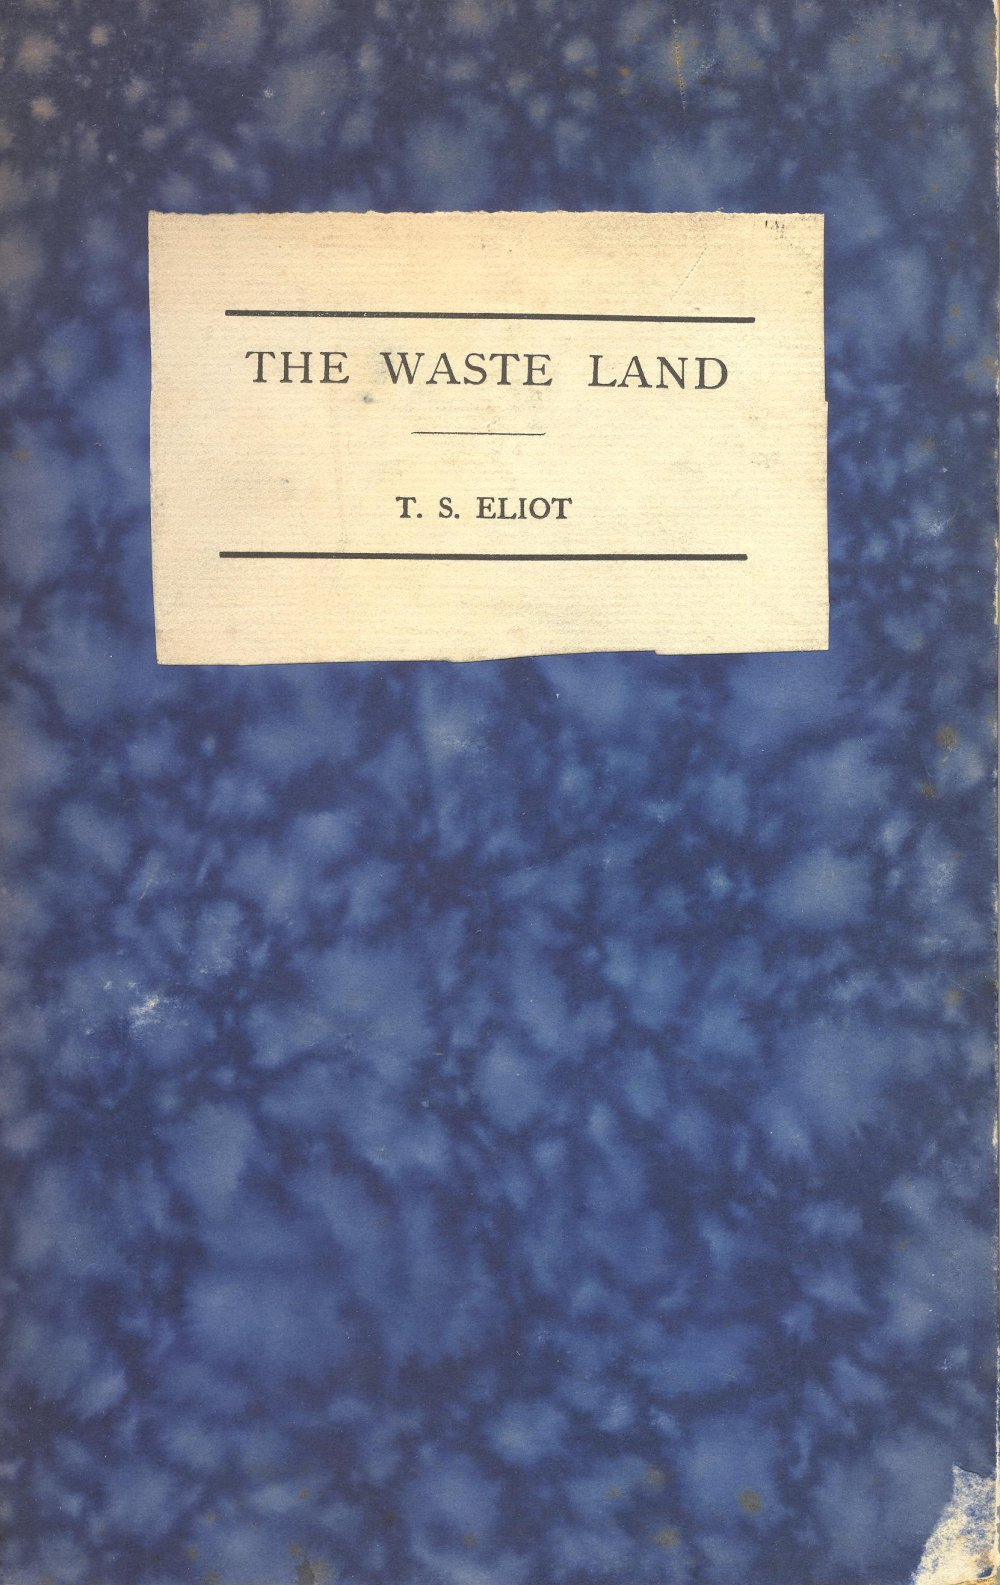 The Waste Land, by T.S. Eliot